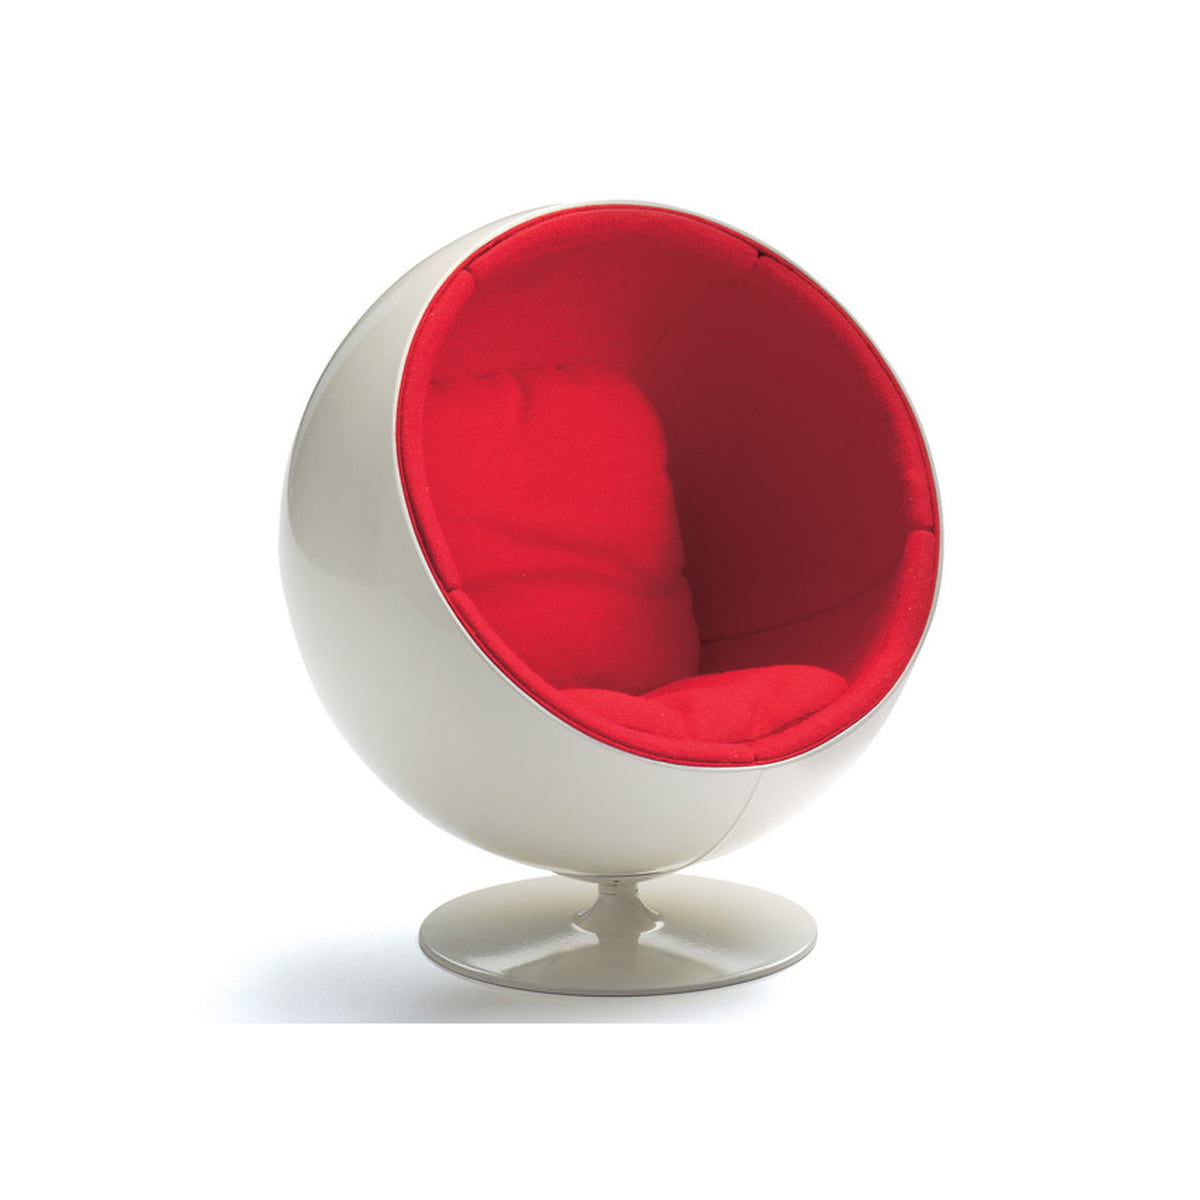 miniature aarnio ball chair vitra shop. Black Bedroom Furniture Sets. Home Design Ideas